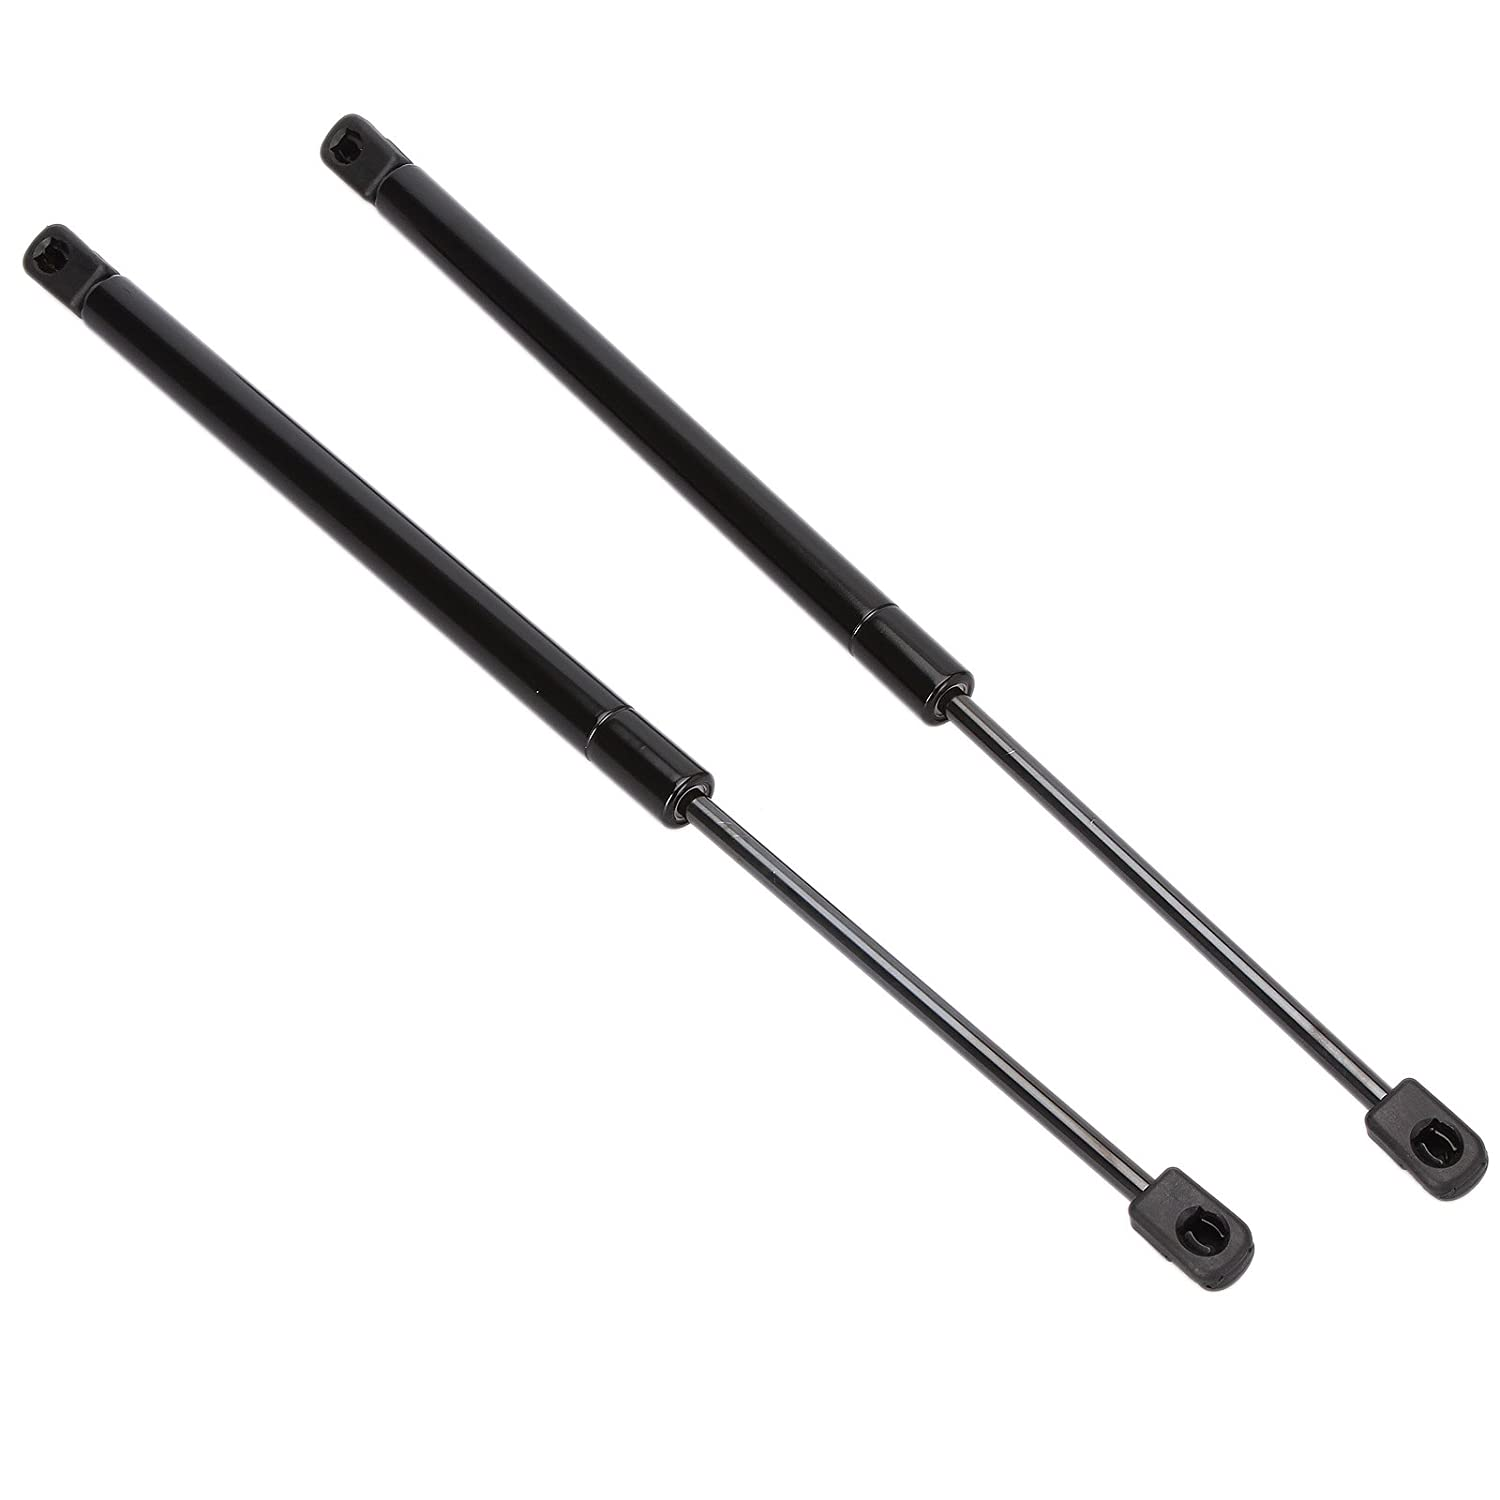 Pair of Gas Struts/Springs Tailgate Boot Holders 8731G3 for 02-On C3 1.4 1.6 16V From Madlife Garage